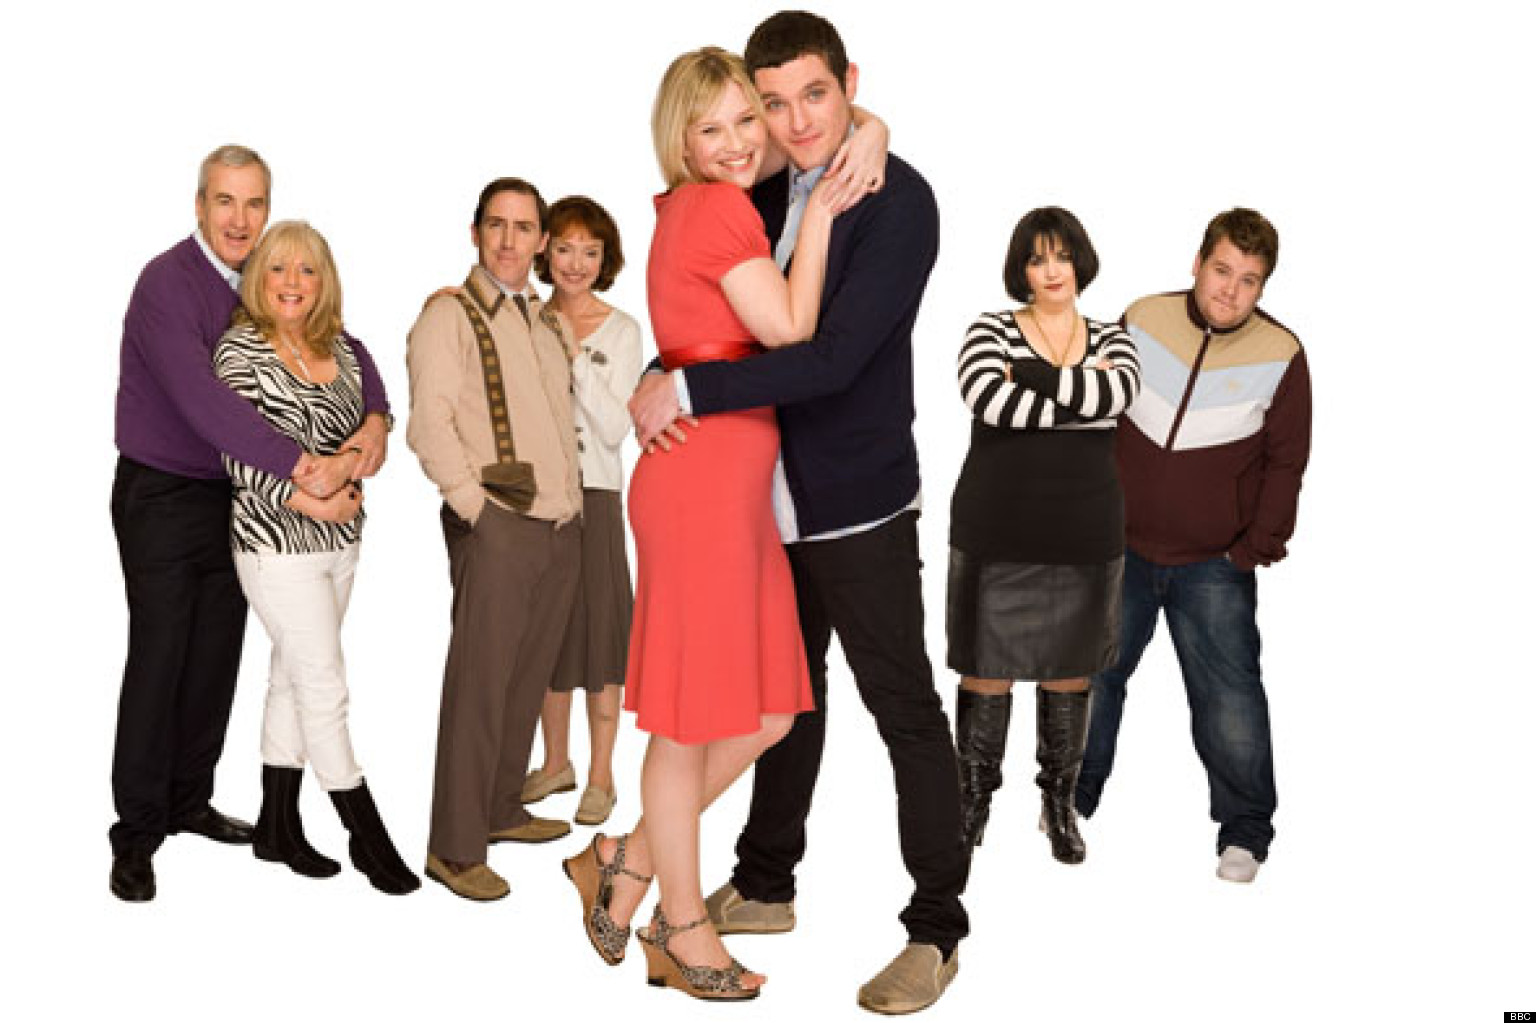 gavin and stacey - photo #1